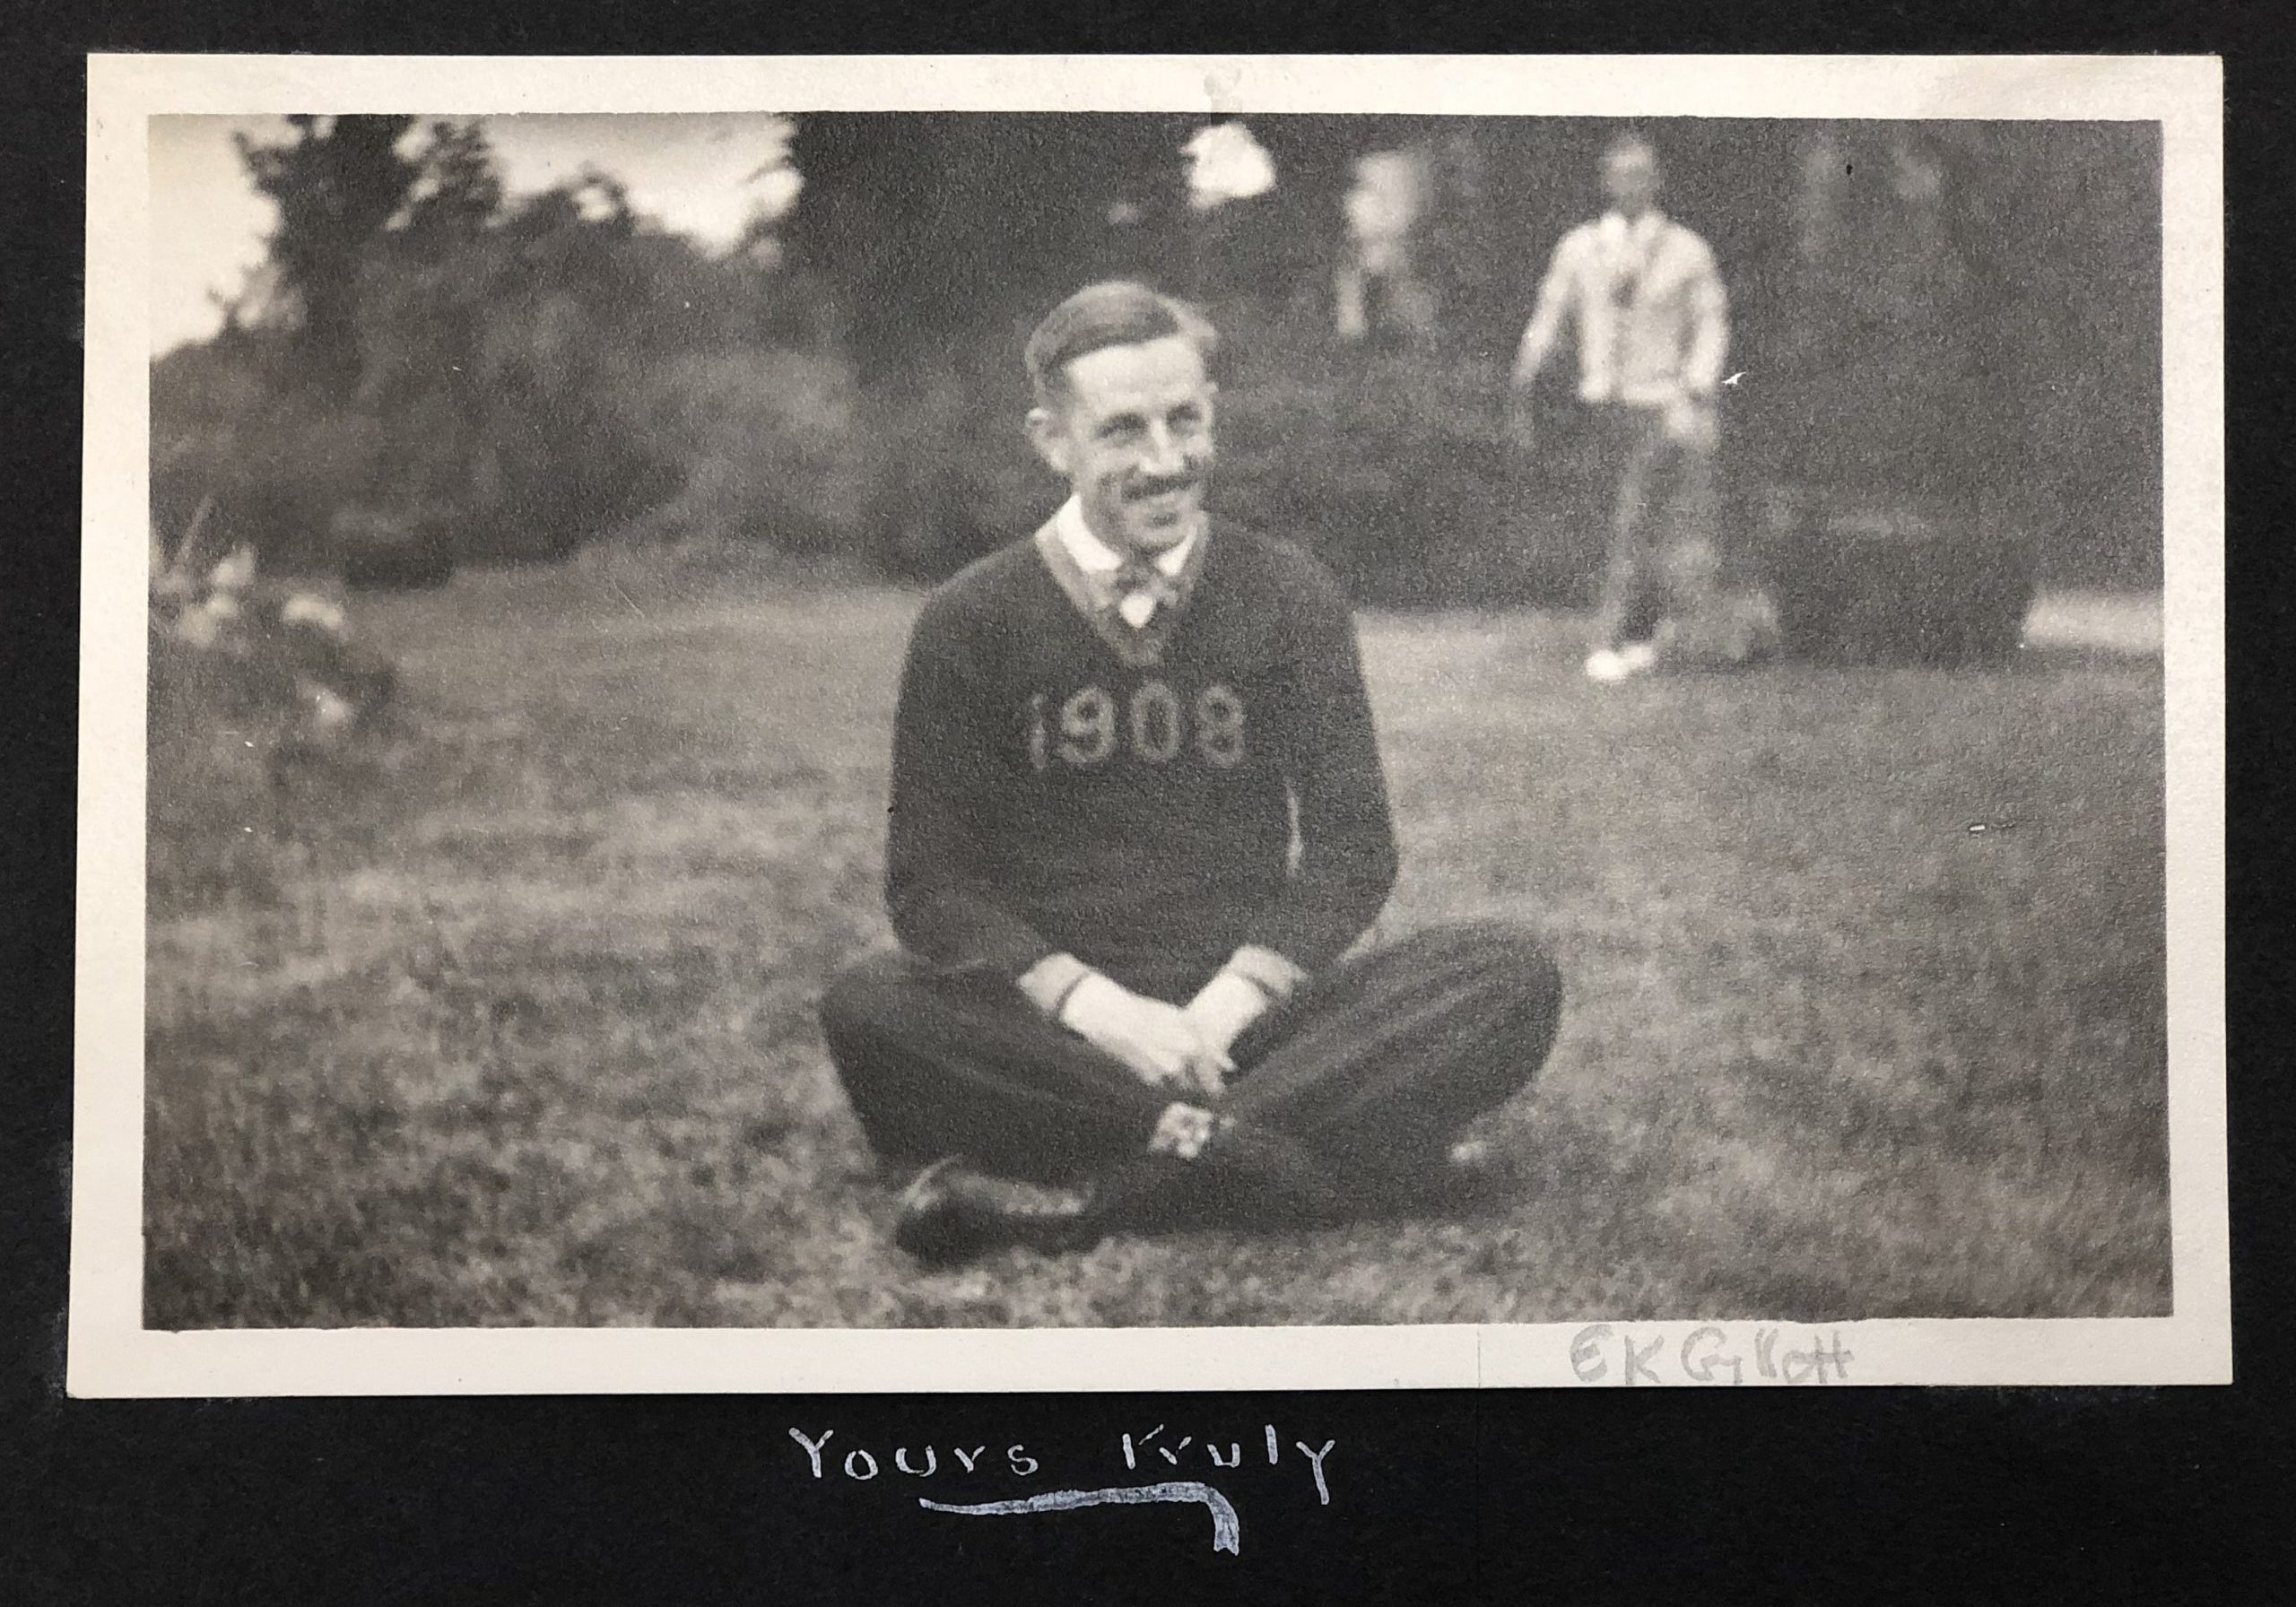 An archival black-and-white photography of E. Kendall Gillet, who wears a sweater with the year 1908 across the chest.